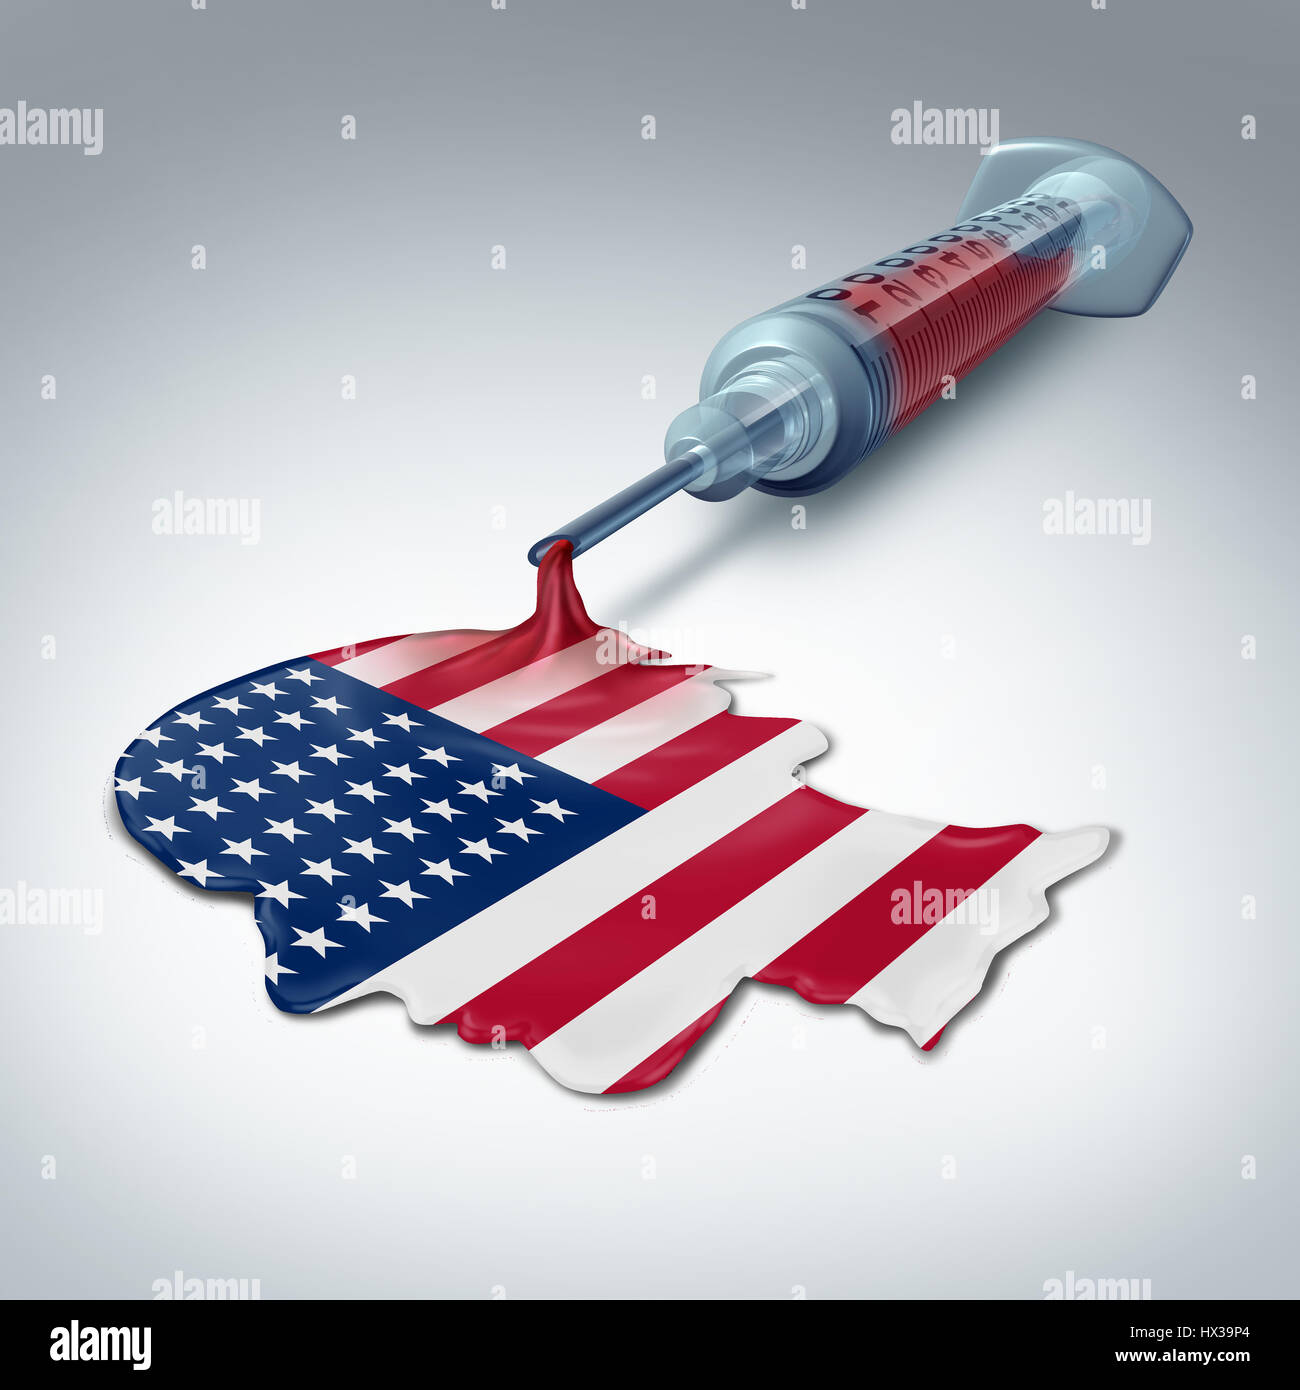 American health care concept as a syringe releasing liquid shaped as a human head and flag of the United States - Stock Image